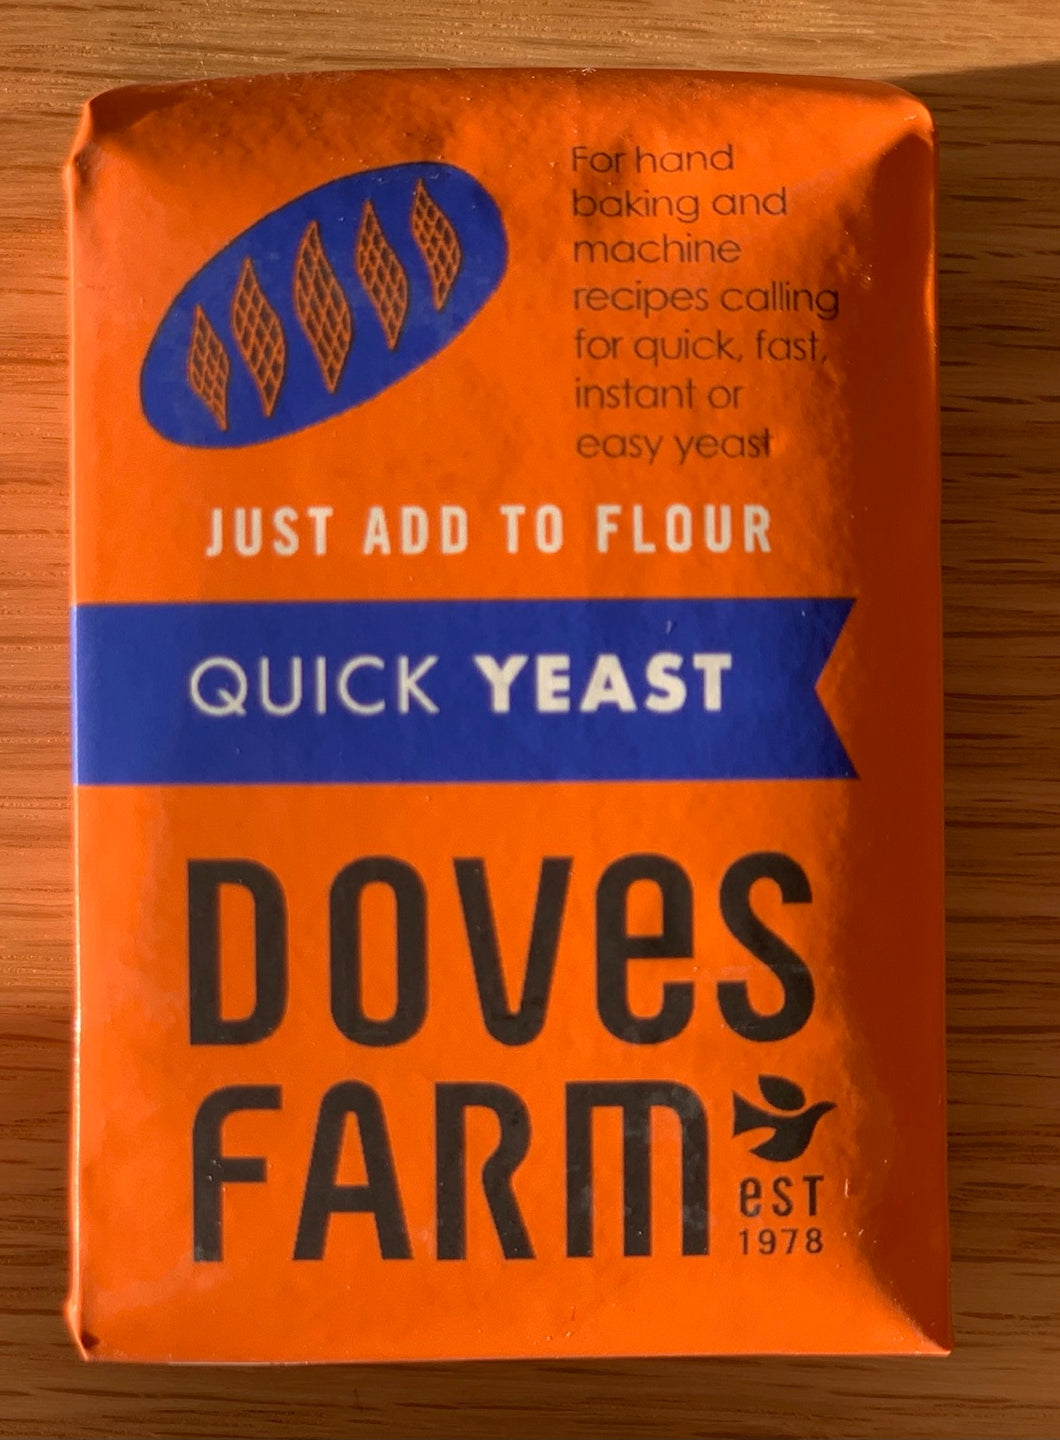 Doves Farm - Quick Yeast